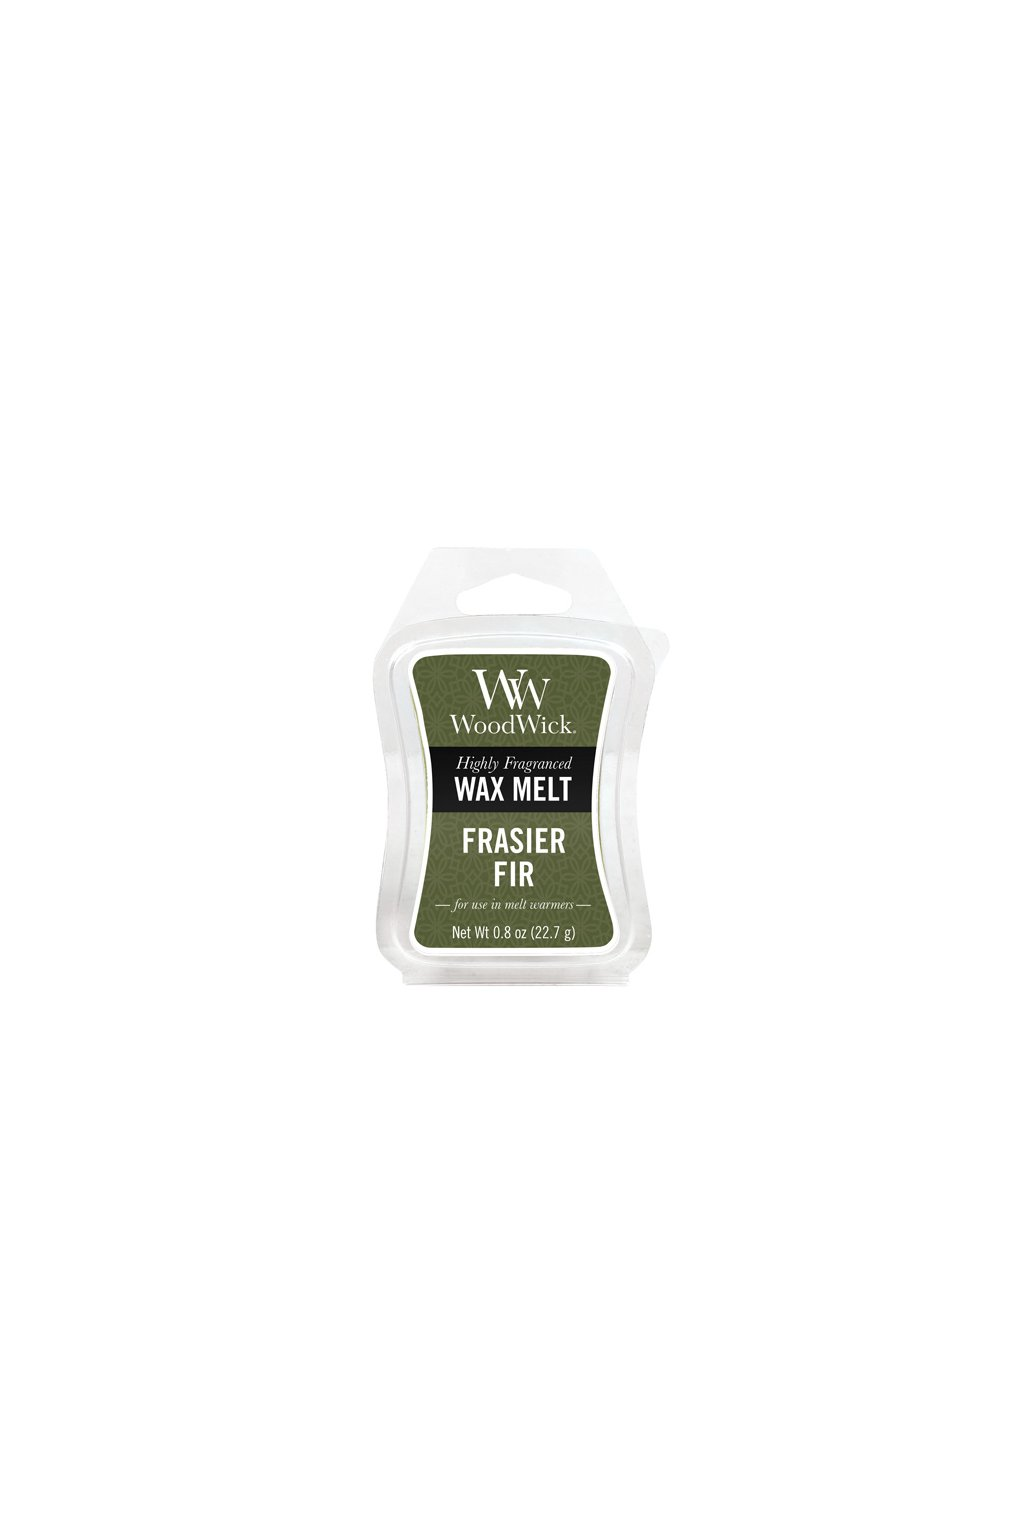 Woodwick Frasier Fir 22g